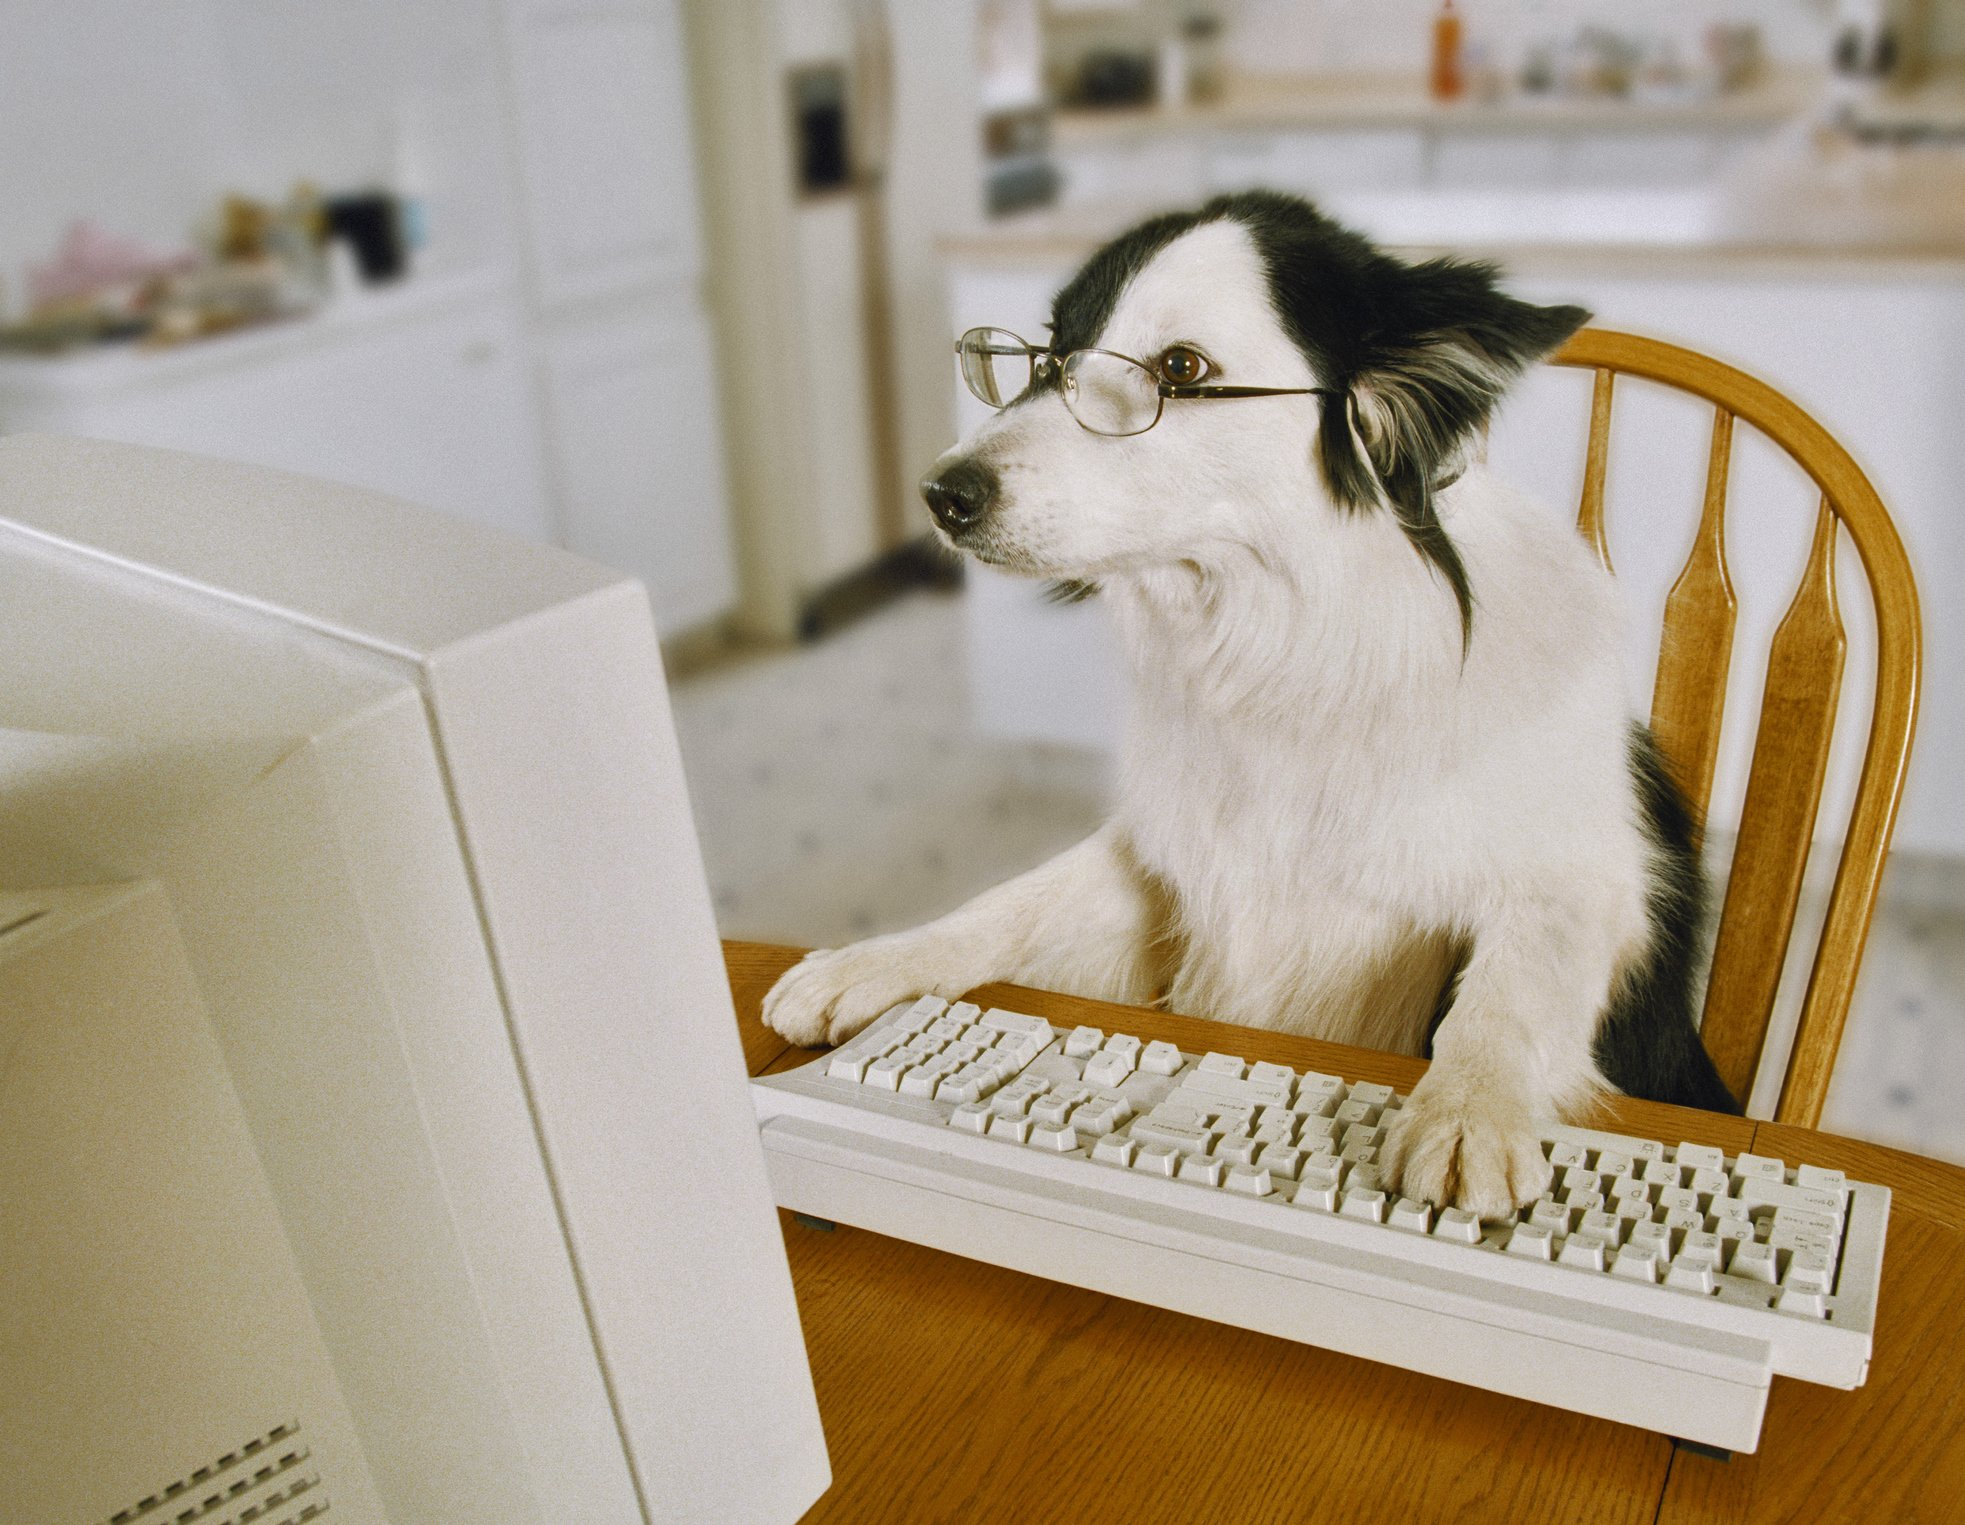 Border Collie Wearing Glasses Sitting at a Table With His Paw on a Keyboard. | Photo: Getty Images